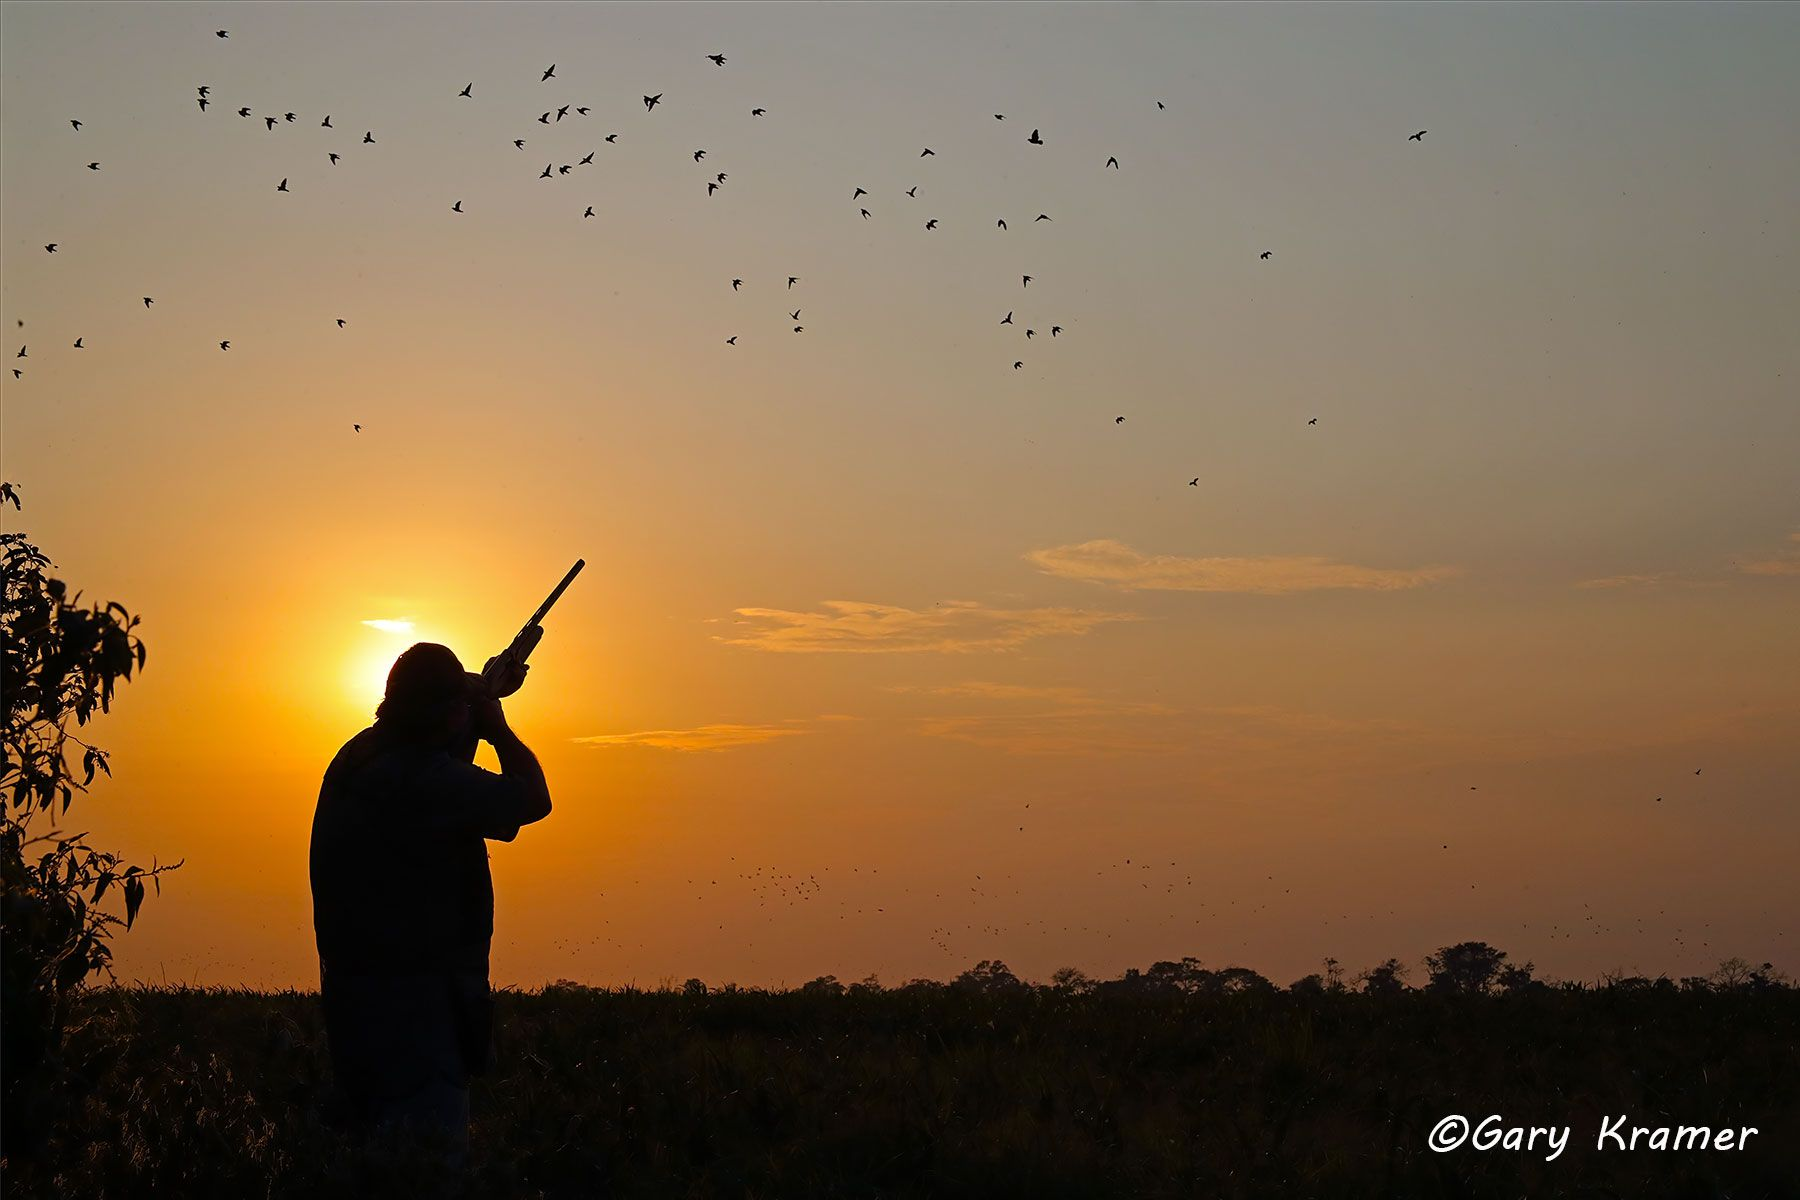 Hunter shooting at Eared Doves at Sunrise/Sunset, Bolivia - SHDess#037d